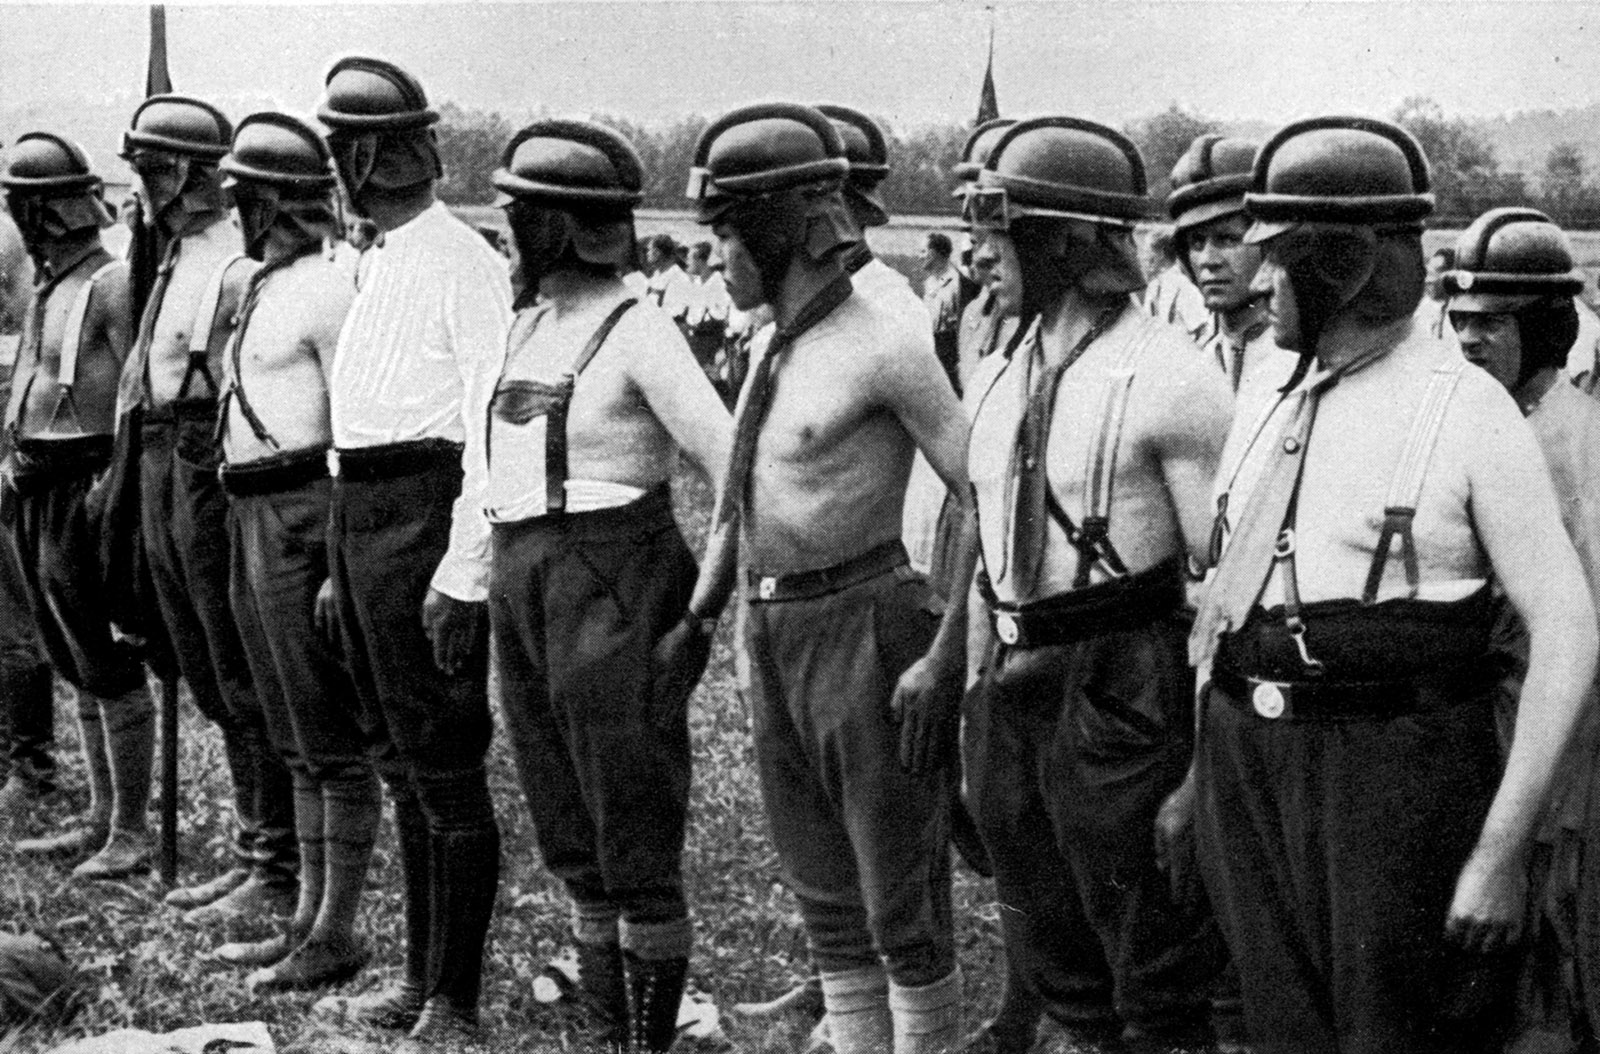 """Stormtroopers without their brown uniforms, which were banned by German authorities several times between their introduction in 1926 and Hitler's appointment as chancellor in 1933. Daniel Siemens writes that an 'SA troop...with members dressed in white shirts or other surrogate """"uniforms"""" still remained highly recognizable.'"""